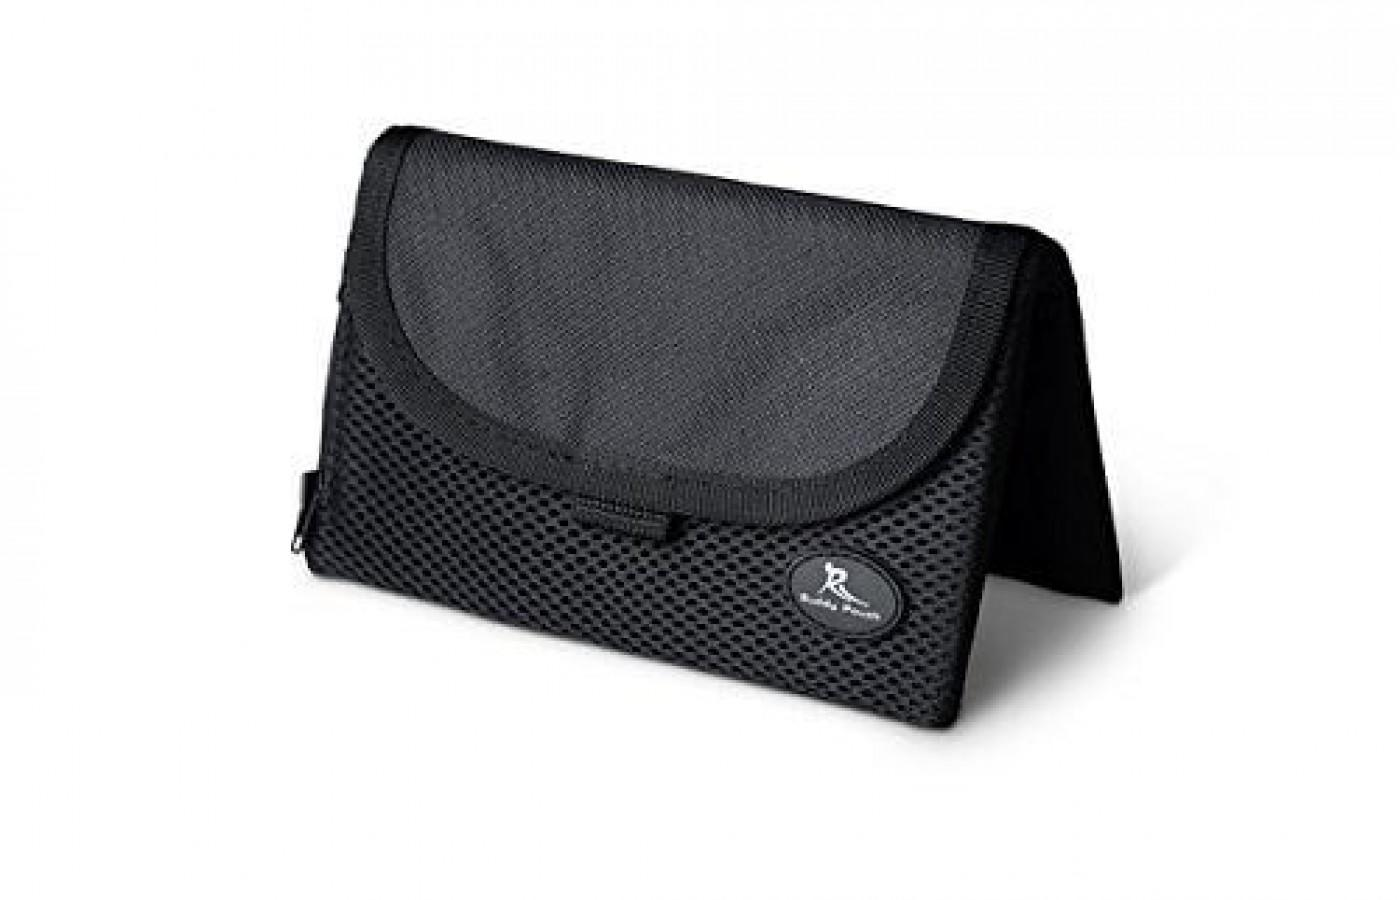 Here's a look at the Buddy Pouch by the Running Buddy